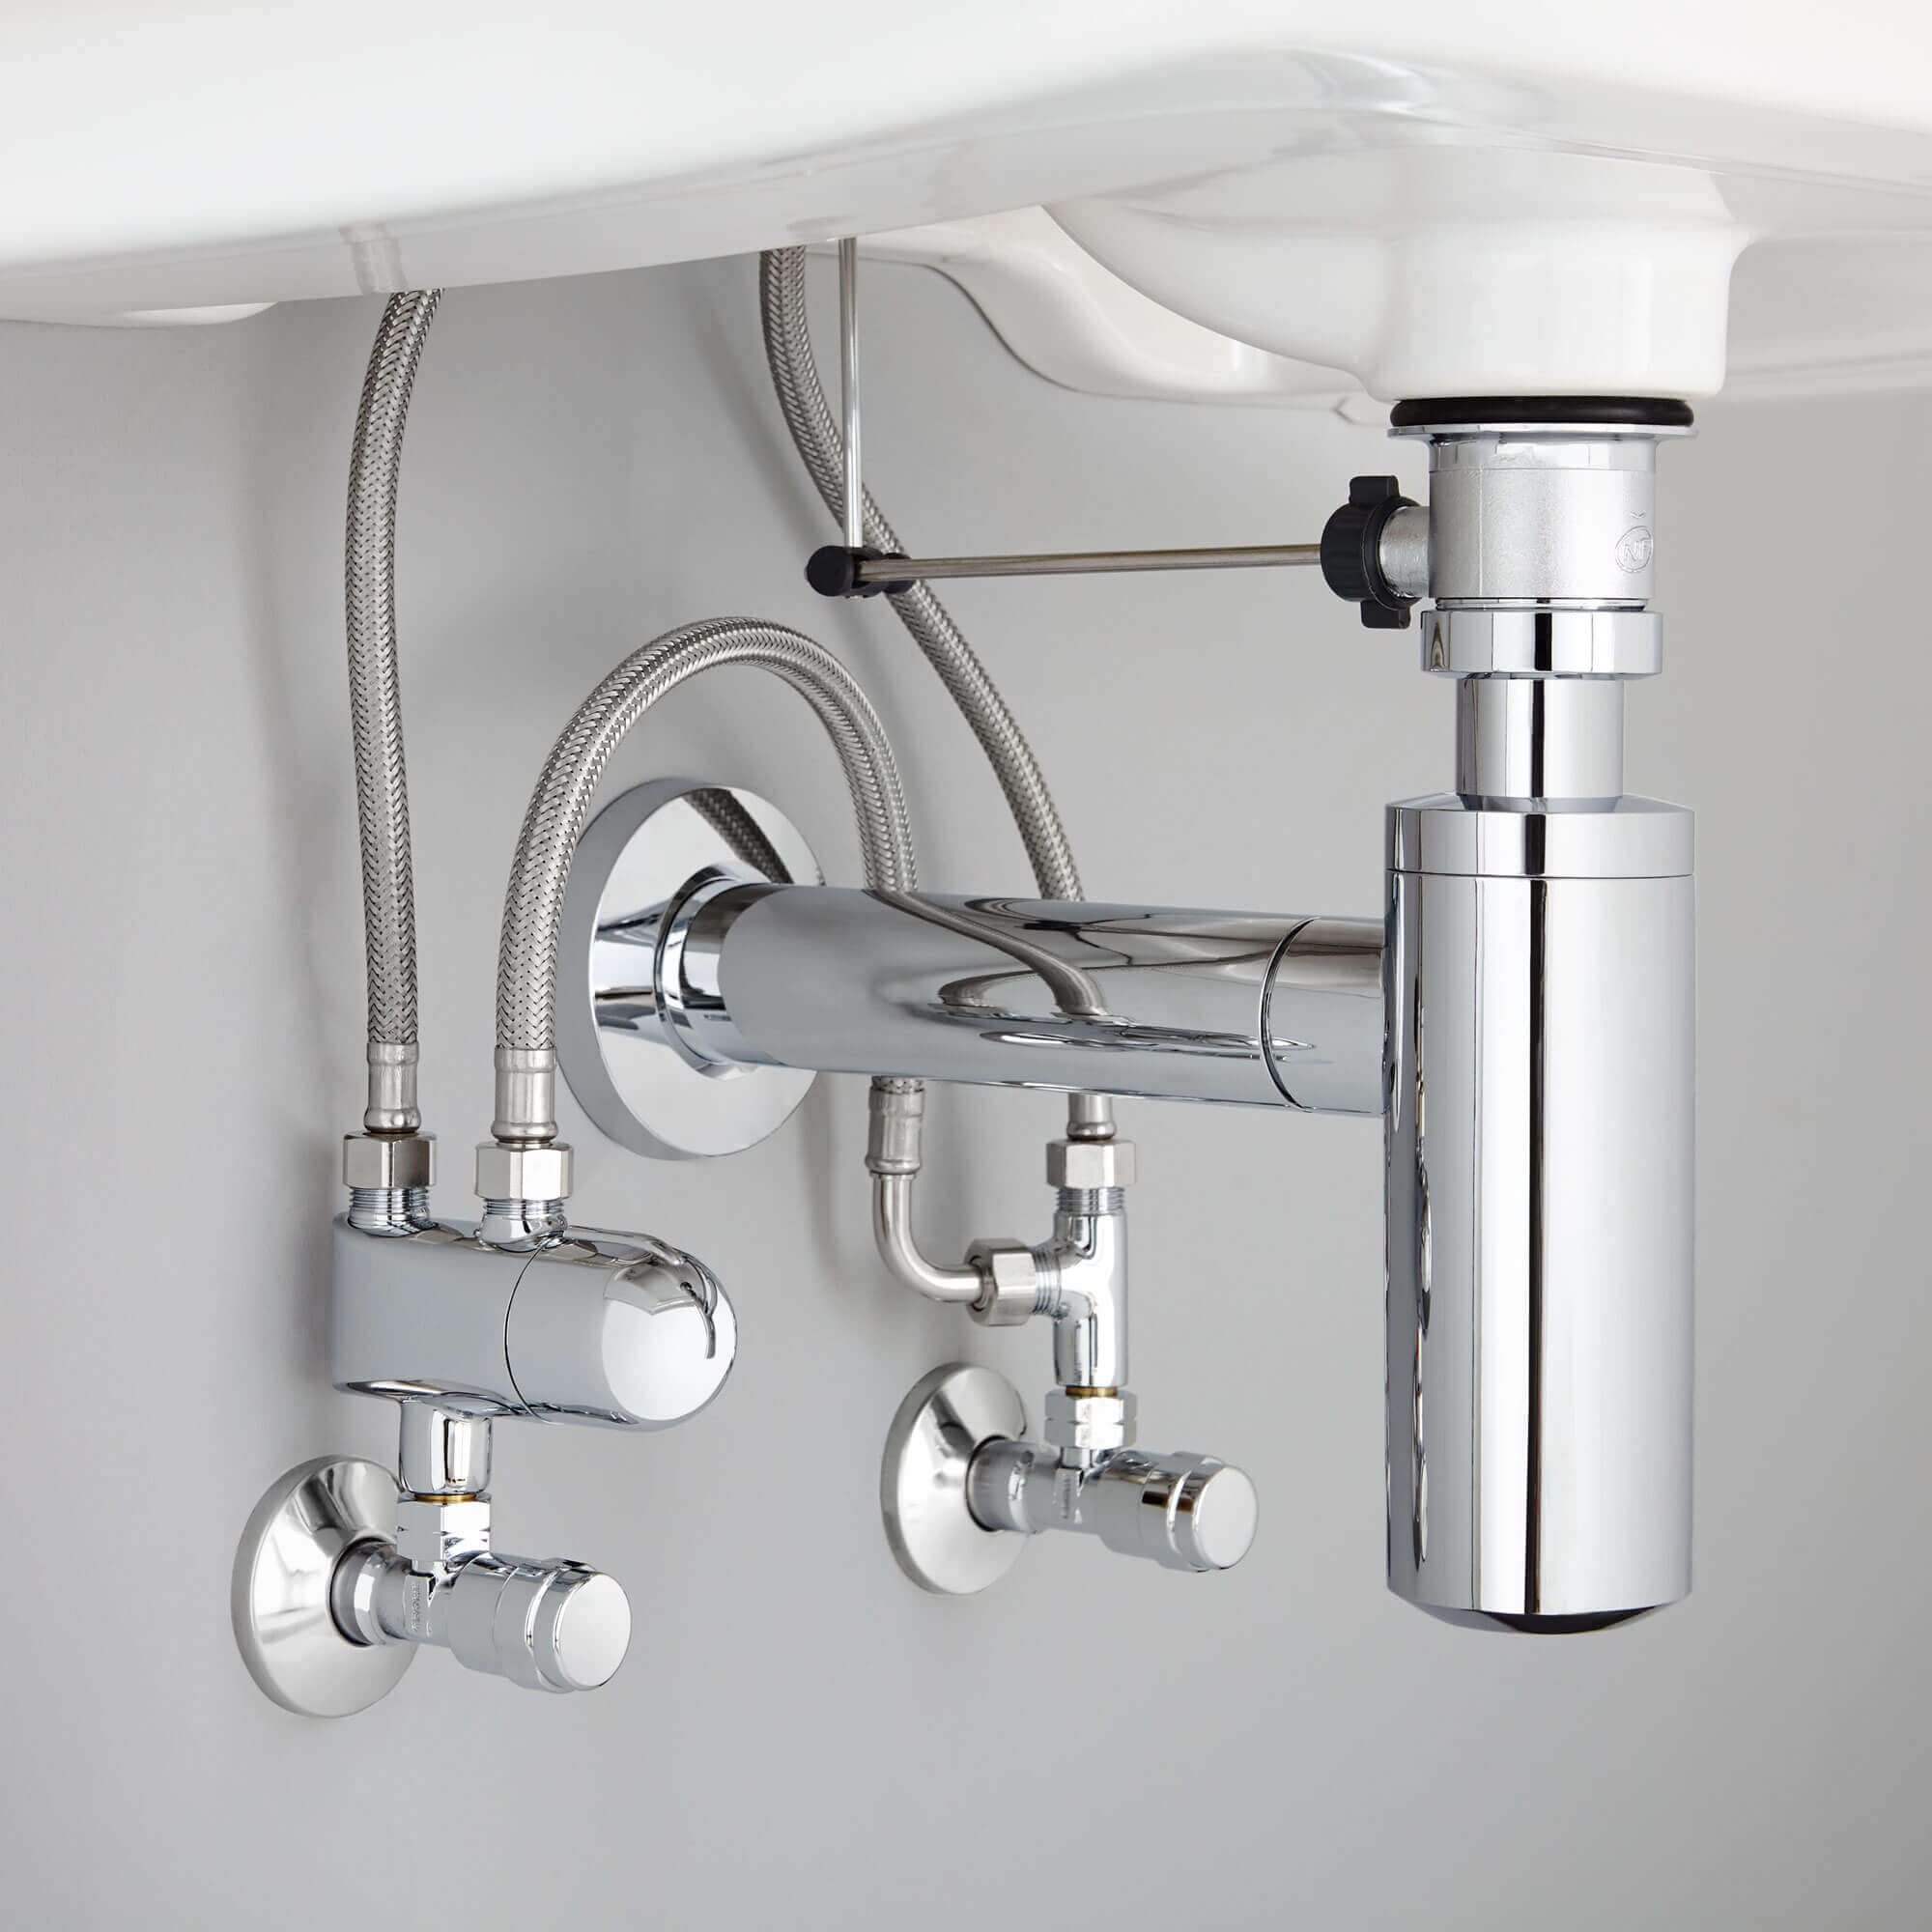 GROHE Grohtherm Micro Thermostat - under the sink view